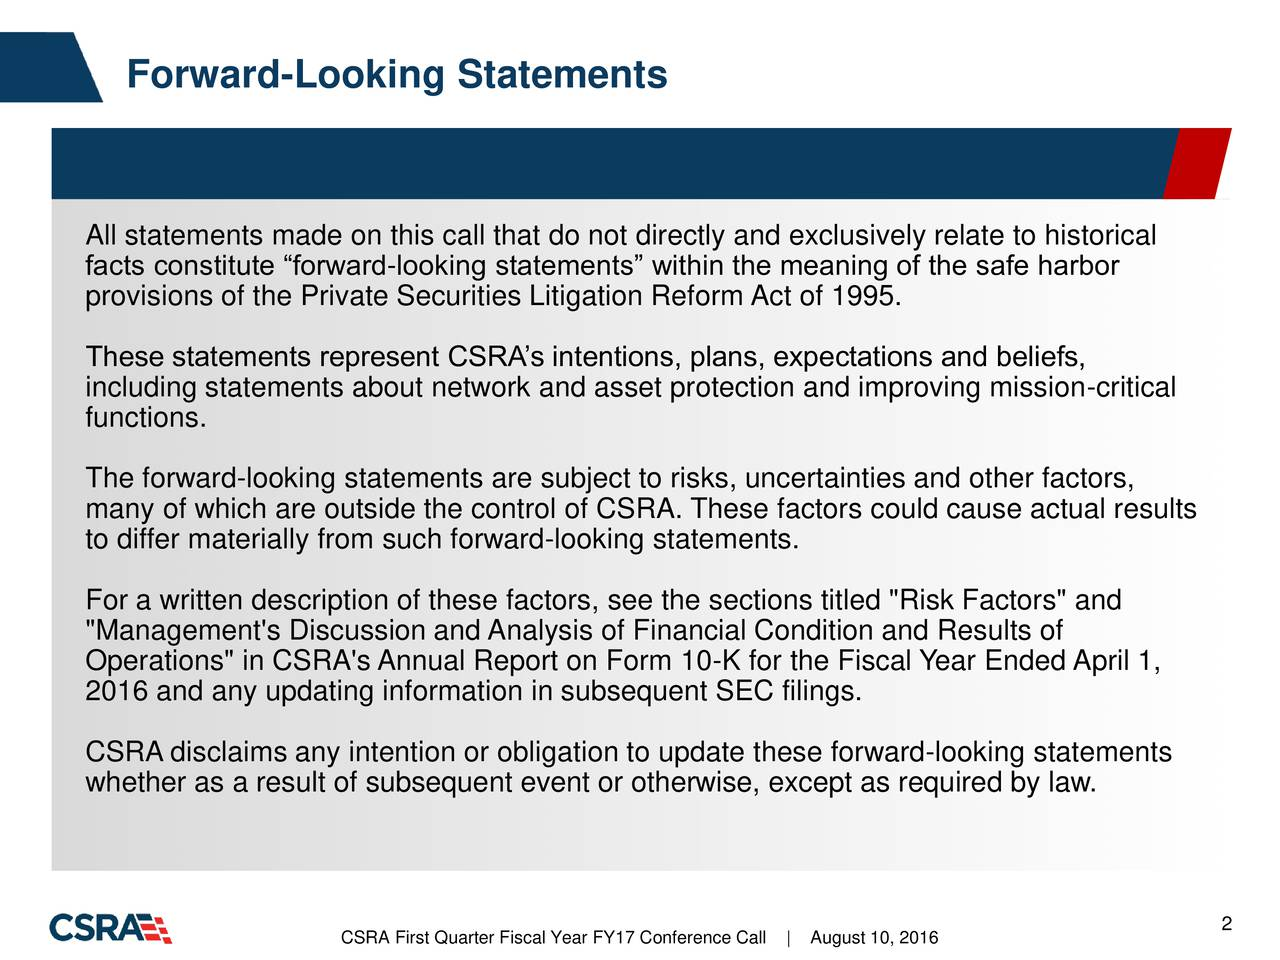 """All statements made on this call that do not directly and exclusively relate to historical facts constitute forward-looking statements within the meaning of the safe harbor provisions of the Private Securities Litigation Reform Act of 1995. These statements represent CSRAs intentions, plans, expectations and beliefs, including statements about network and asset protection and improving mission-critical functions. The forward-looking statements are subject to risks, uncertainties and other factors, many of which are outside the control of CSRA. These factors could cause actual results to differ materially from such forward-looking statements. For a written description of these factors, see the sections titled """"Risk Factors"""" and """"Management's Discussion and Analysis of Financial Condition and Results of Operations"""" in CSRA's Annual Report on Form 10-K for the Fiscal Year Ended April 1, 2016 and any updating information in subsequent SEC filings. CSRA disclaims any intention or obligation to update these forward-looking statements whether as a result of subsequent event or otherwise, except as required by law. CSRA First Quarter Fiscal Year FY17 Con